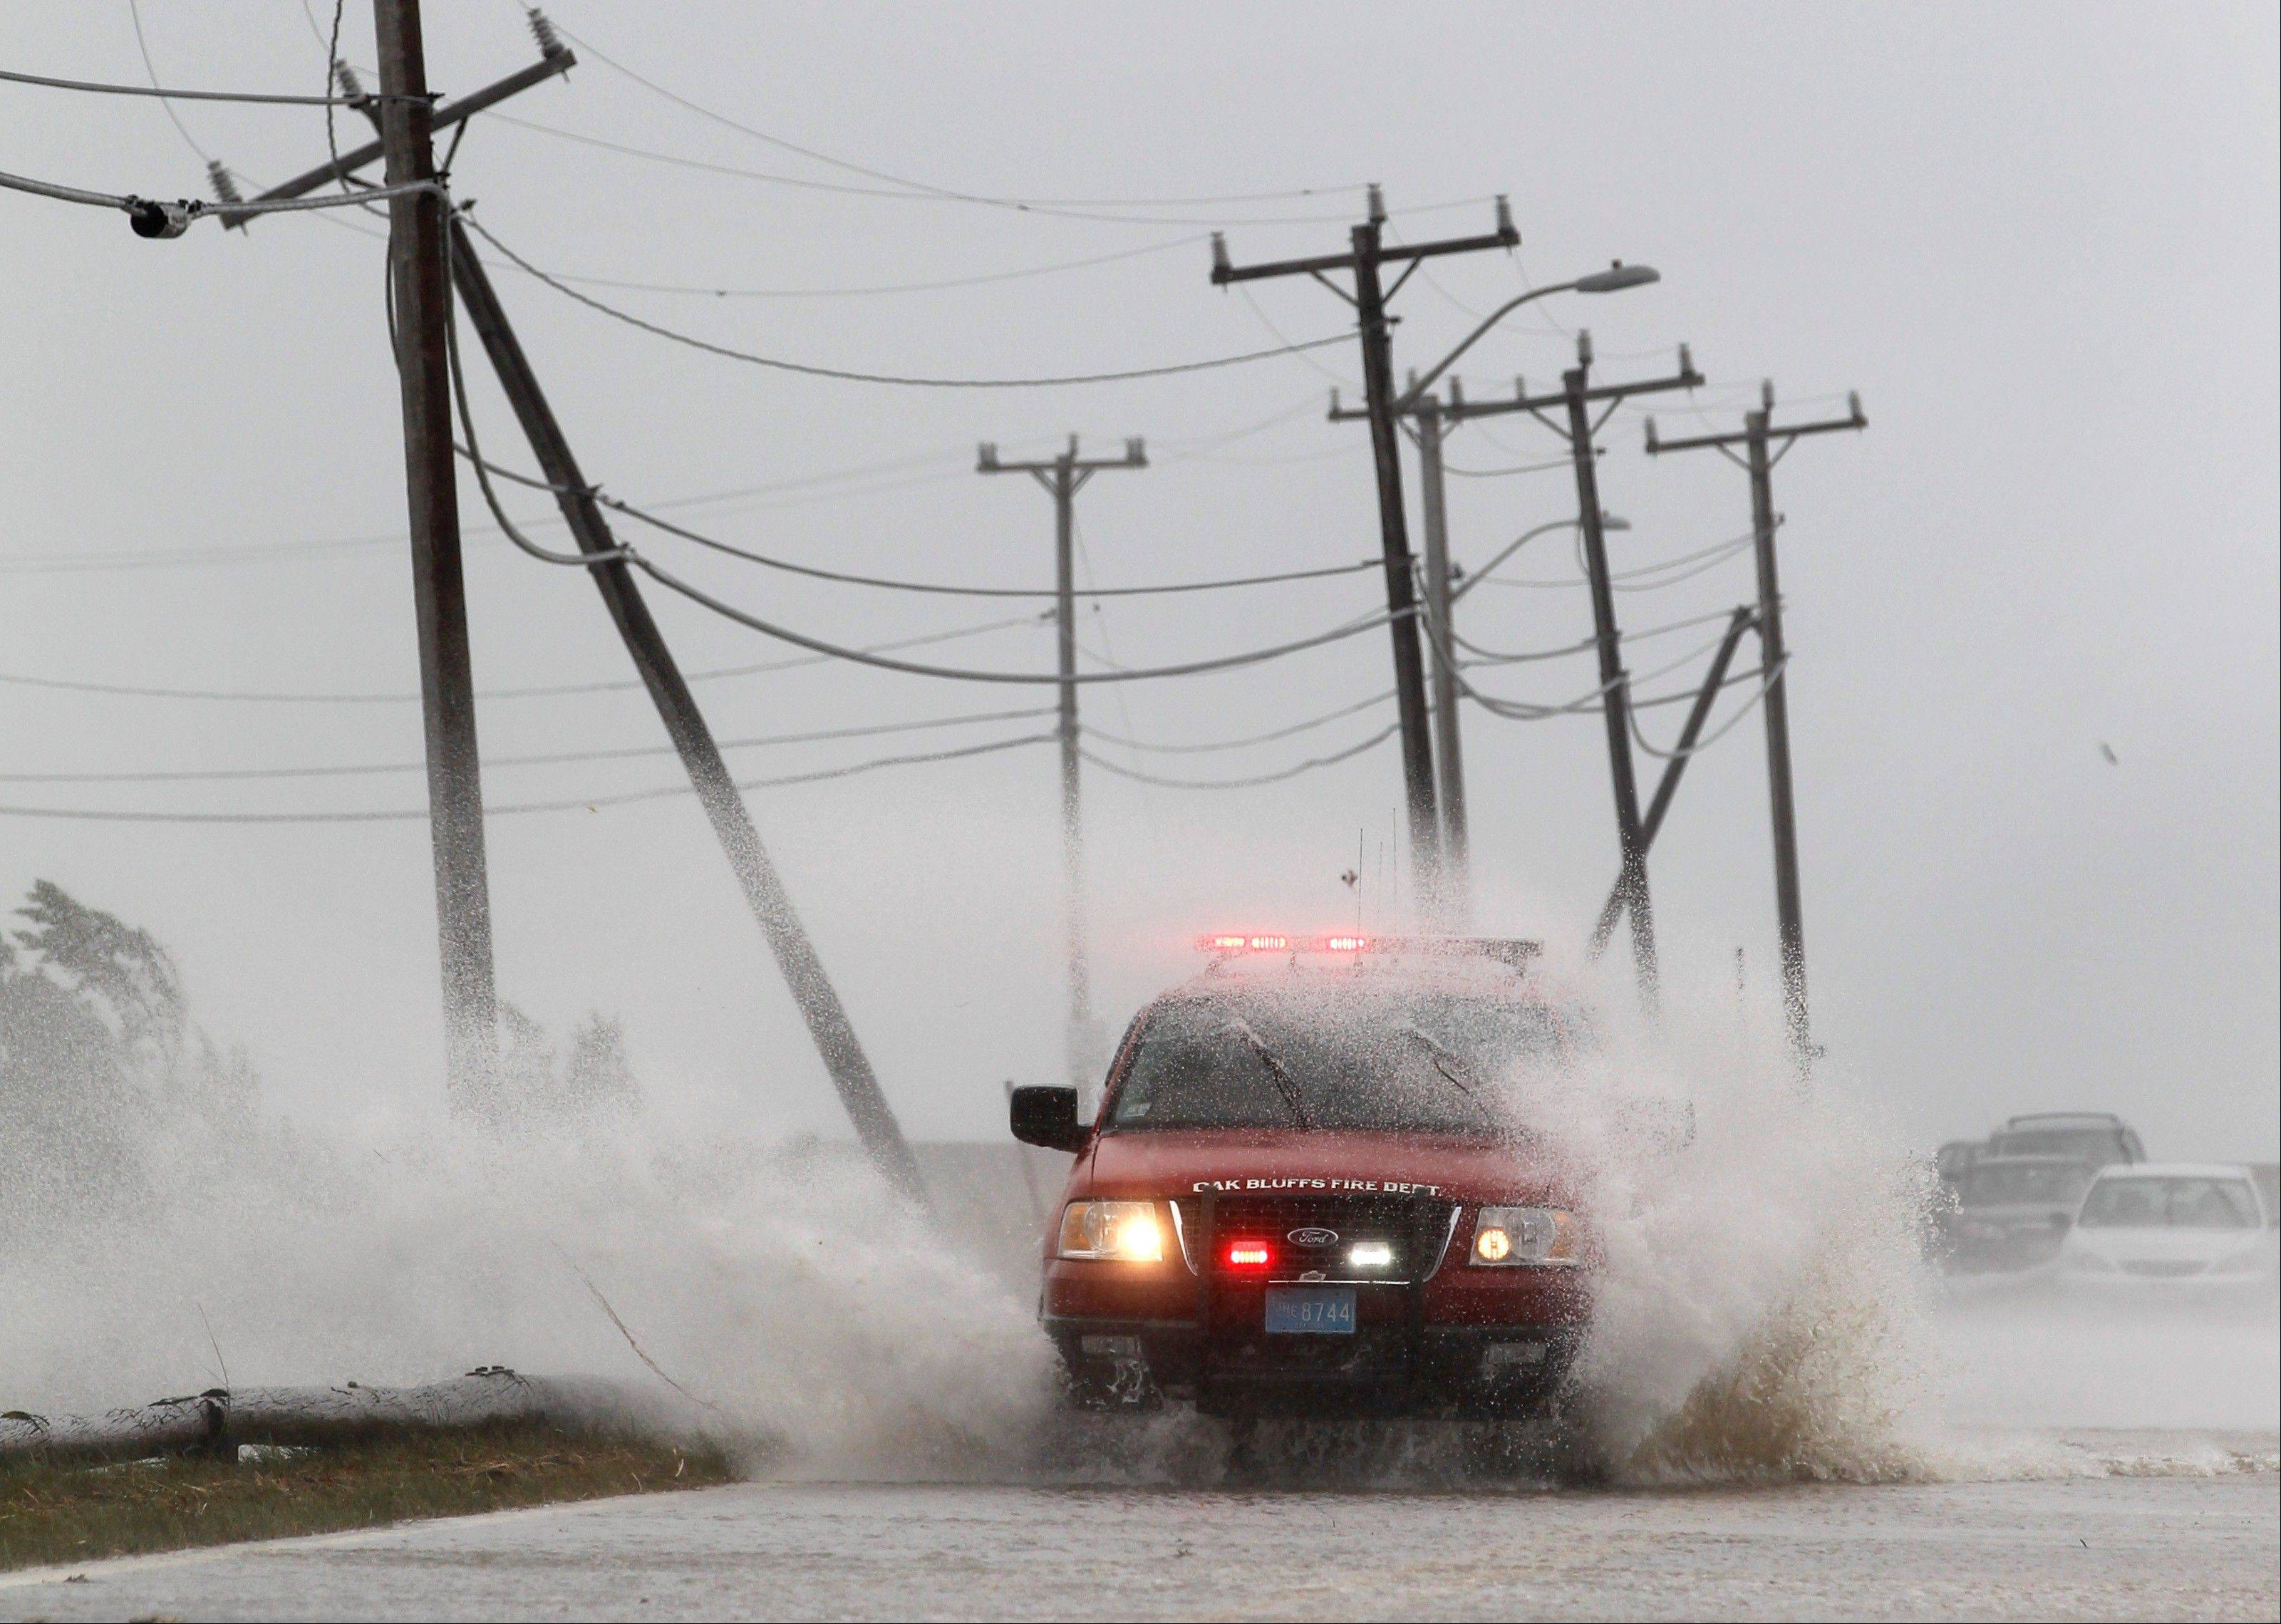 An Oak Bluffs fire department vehicle is buffeted by strong winds and ocean spray from Tropical Storm Irene while driving along a costal road in Edgartown, Mass., on the island of Martha's Vineyard, Sunday, Aug. 28, 2011.